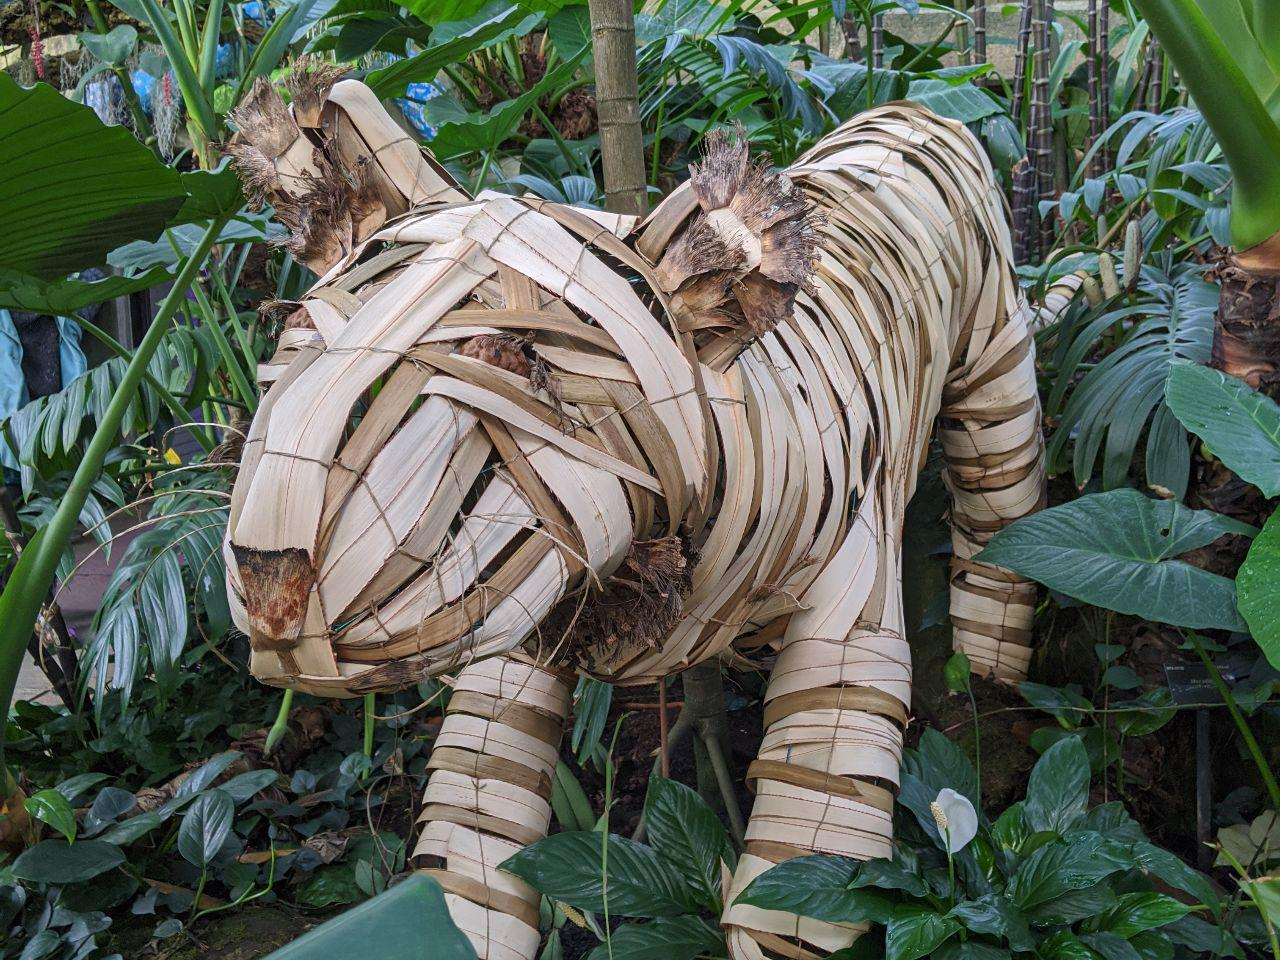 Bamboo tiger friend at Kew Orchid Festival